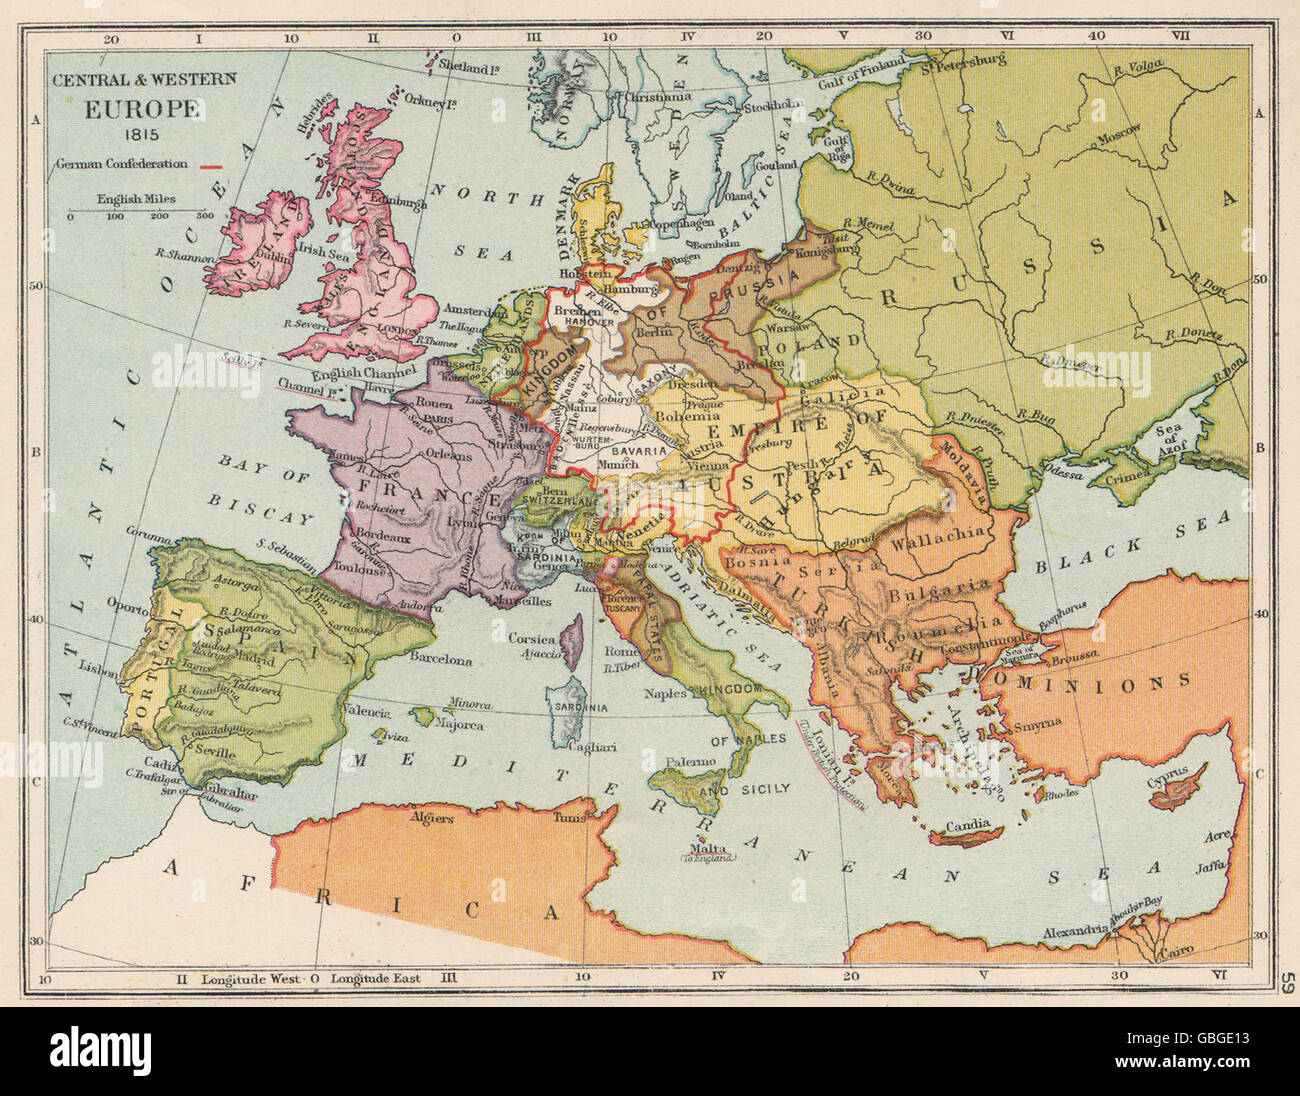 euratlas periodis web map of netherlands in year 1600 political